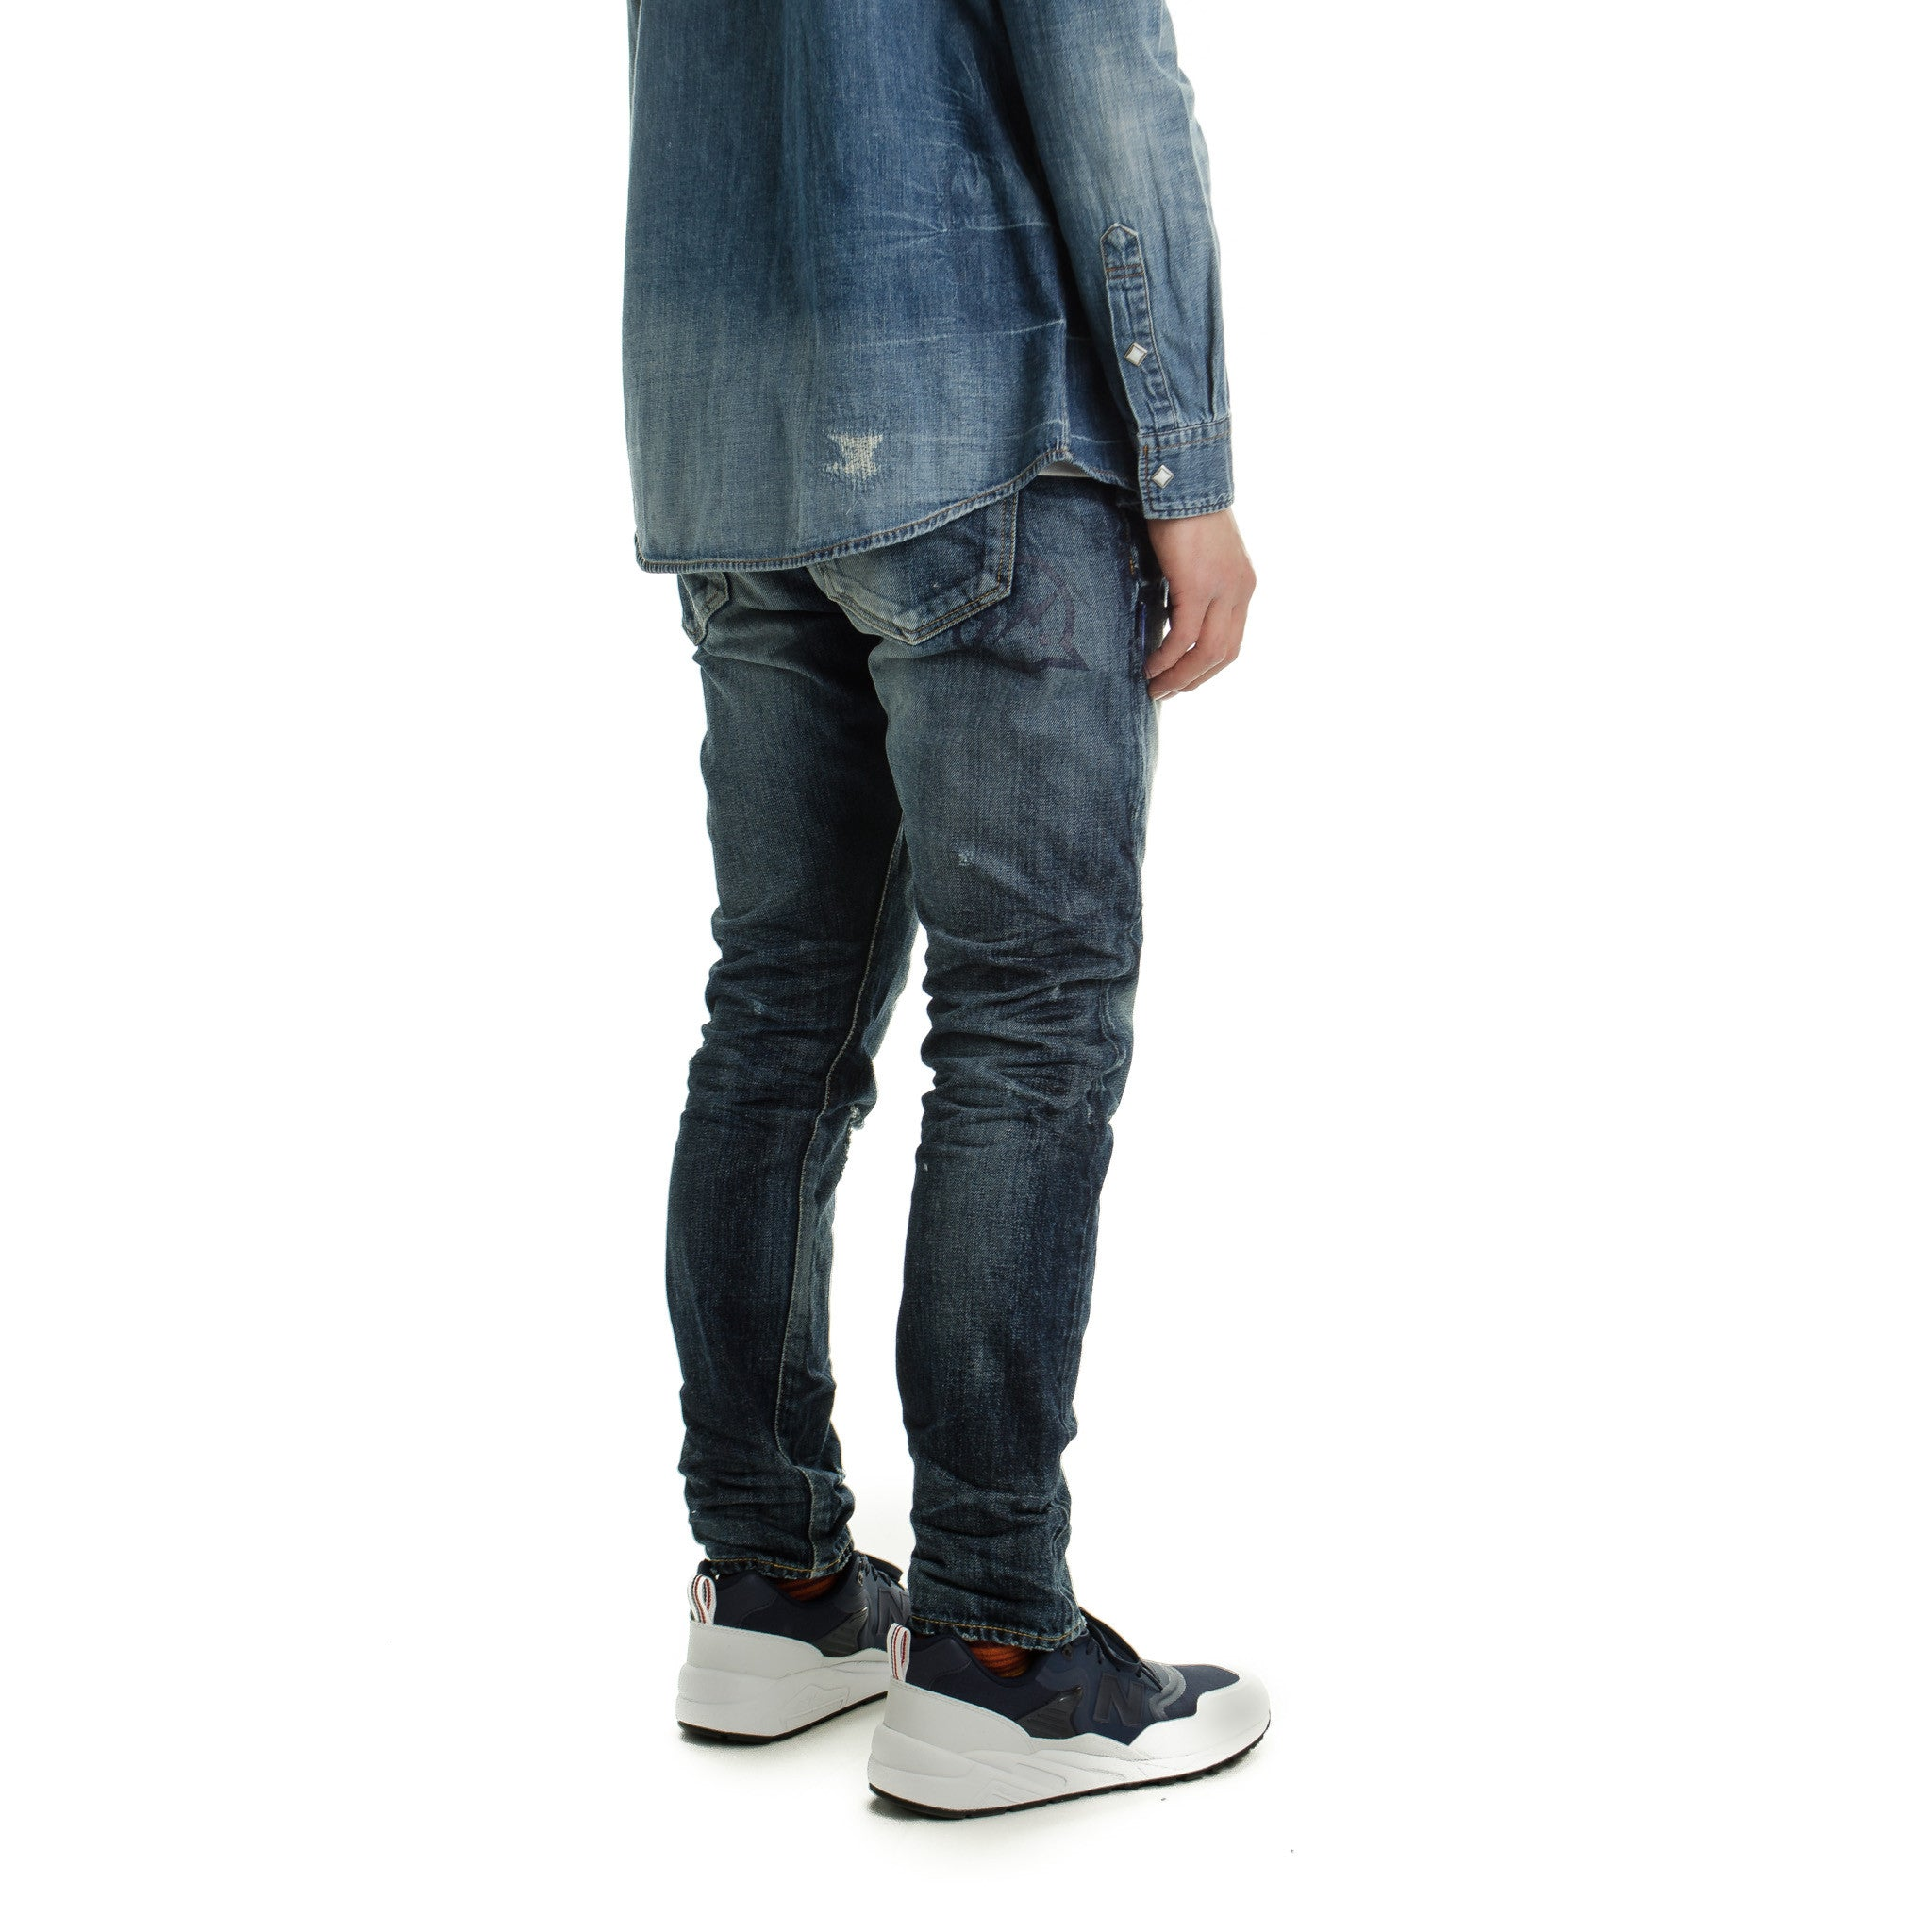 Three Yrs Wash Tapered Denim Dark Indigo